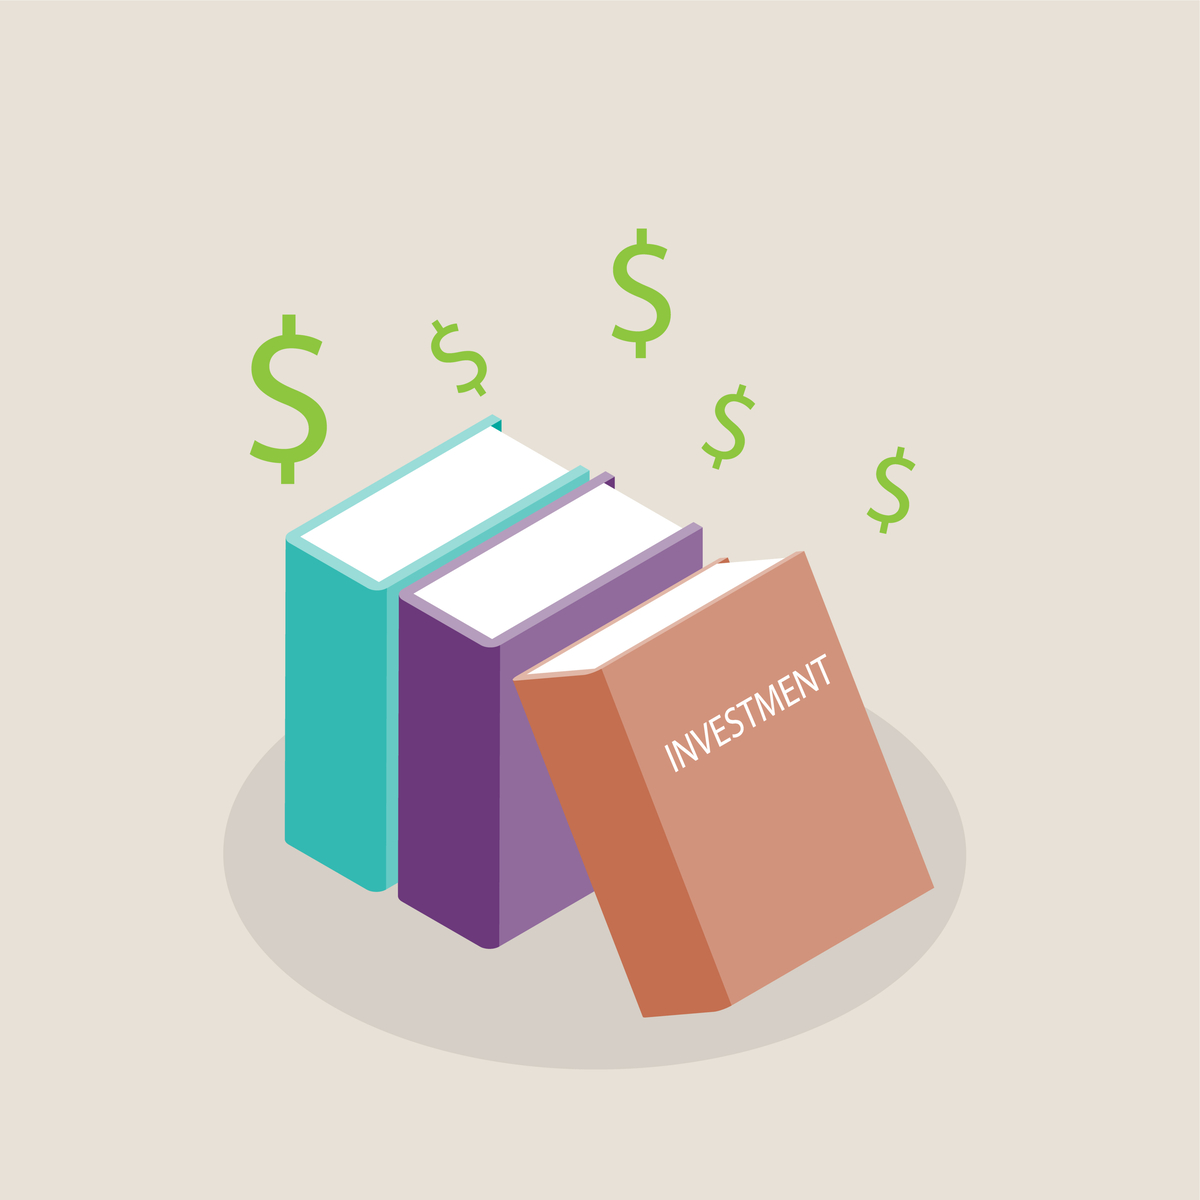 Illustration of books. One of them is titled Investment.